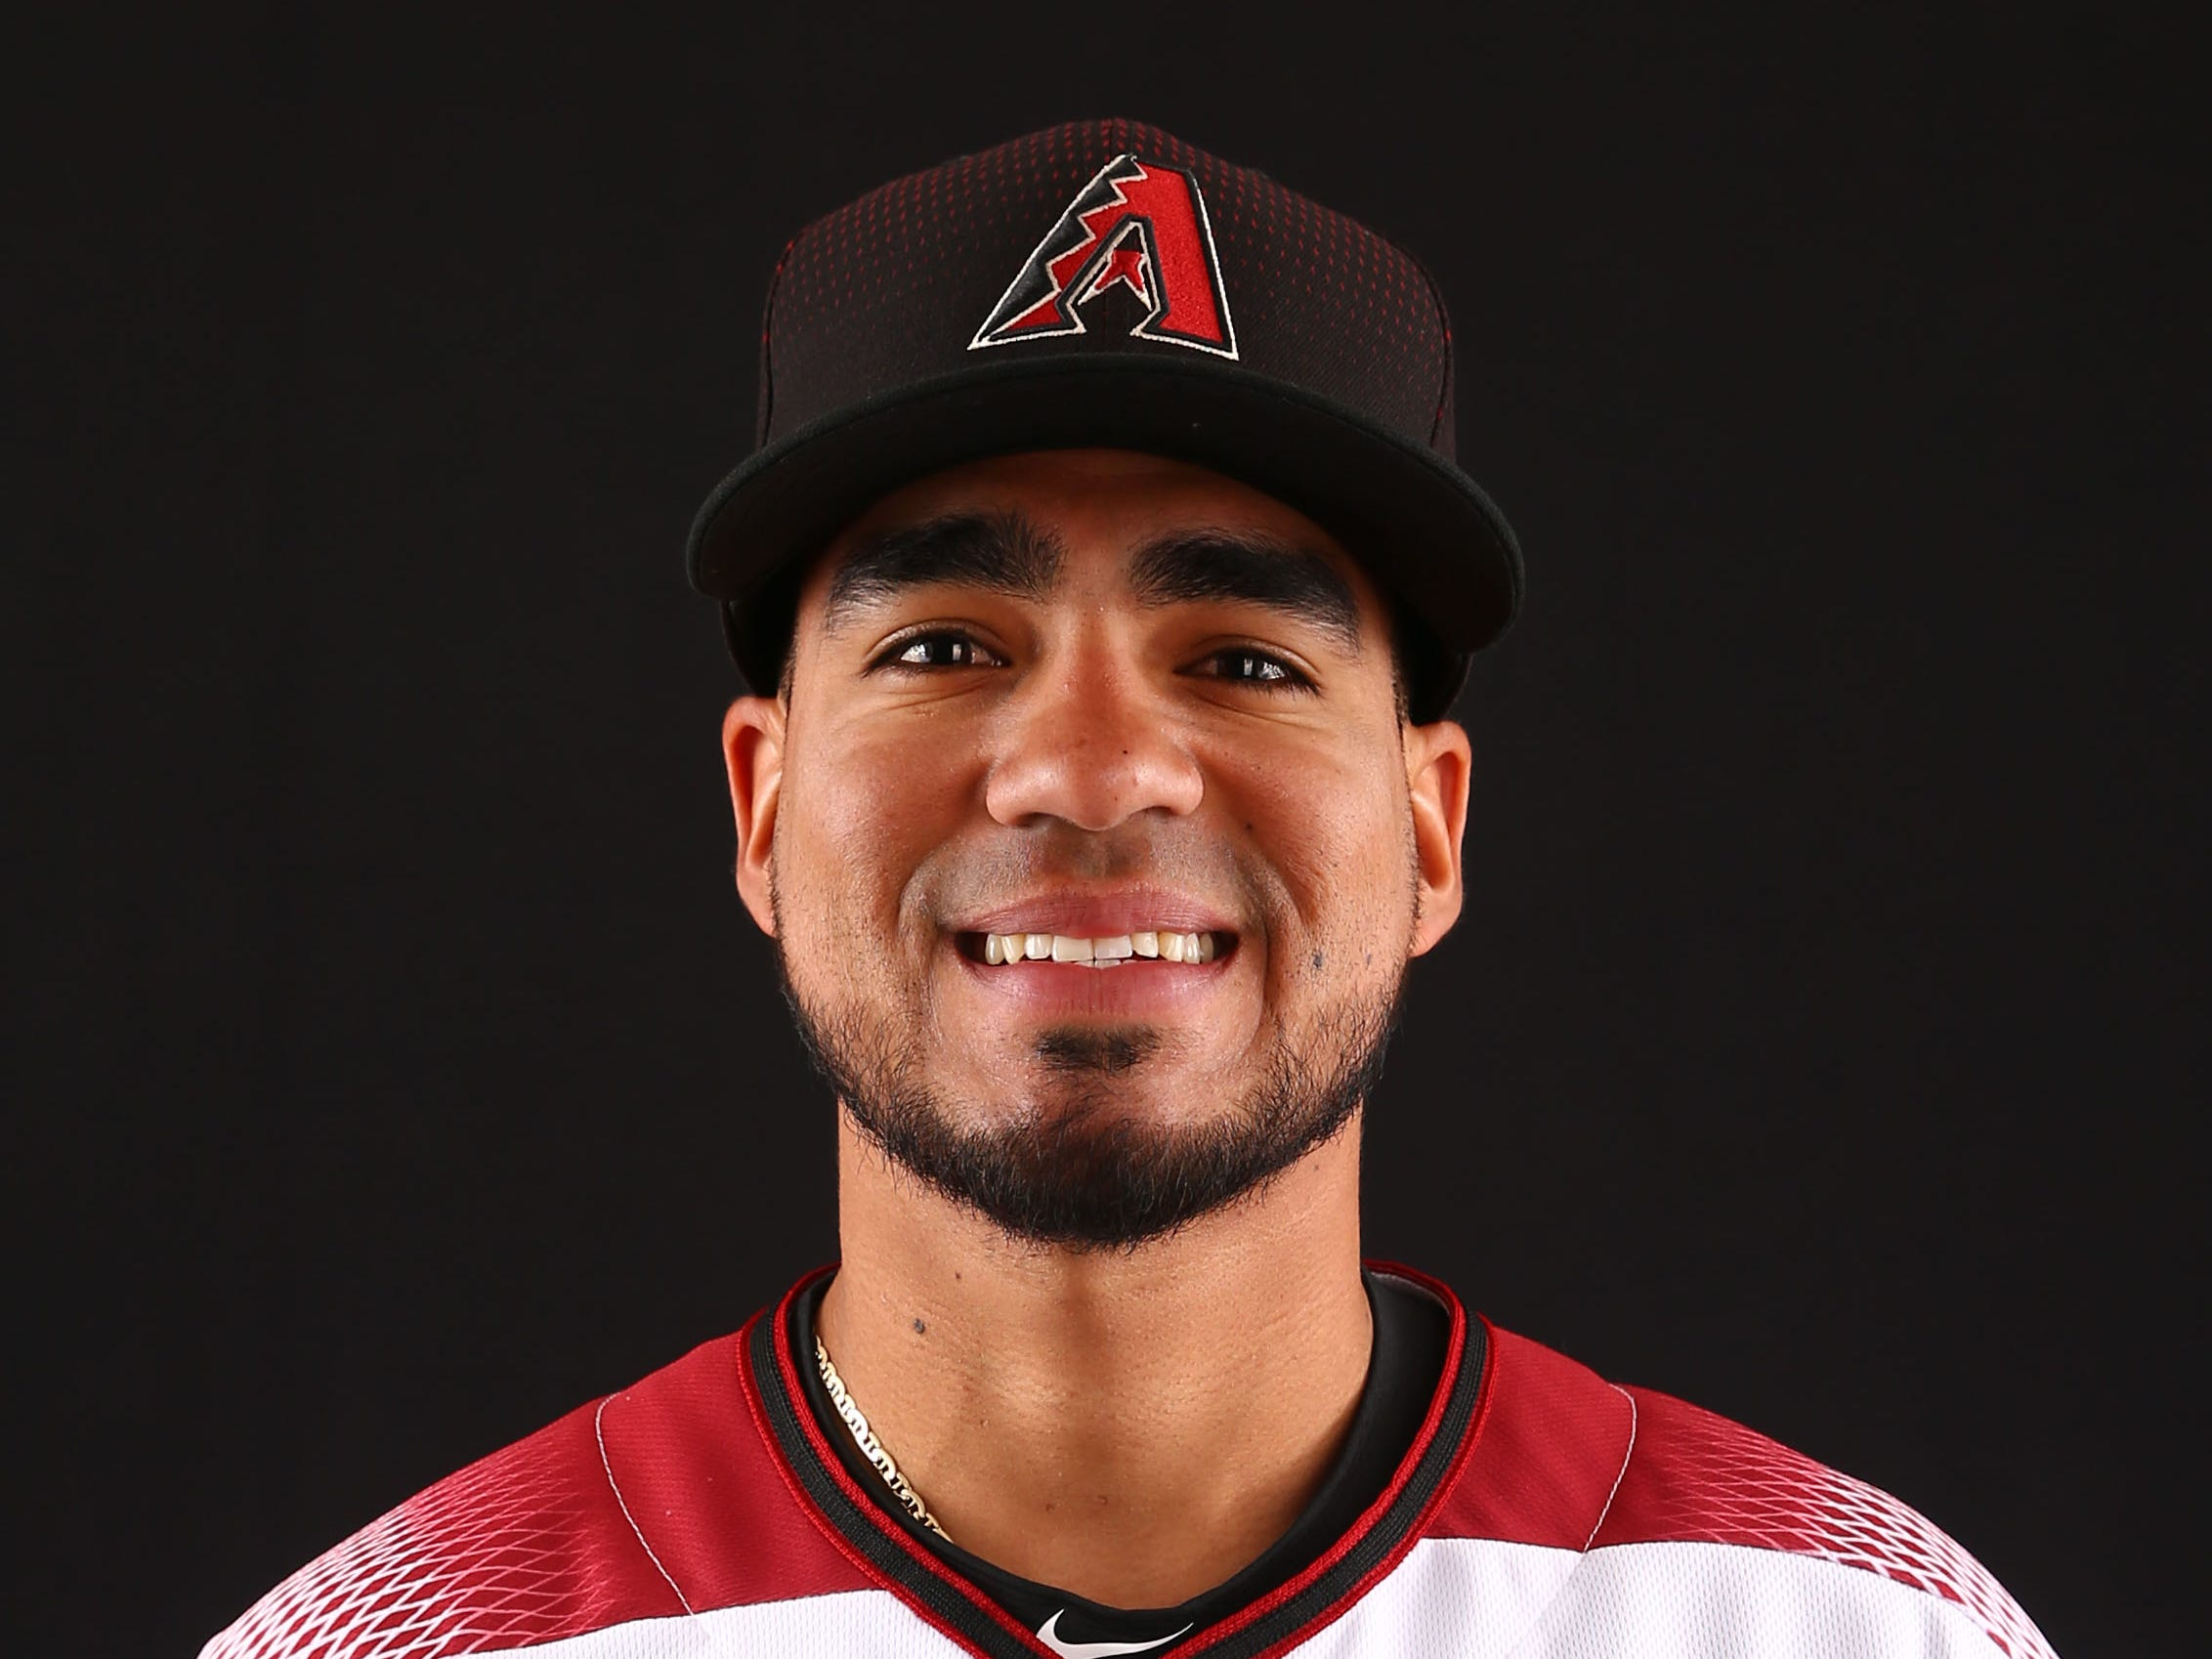 Juniel Querecuto of the Arizona Diamondbacks poses for a photo during the annual Spring Training Photo Day on Feb. 20 at Salt River Fields in Scottsdale, Ariz.